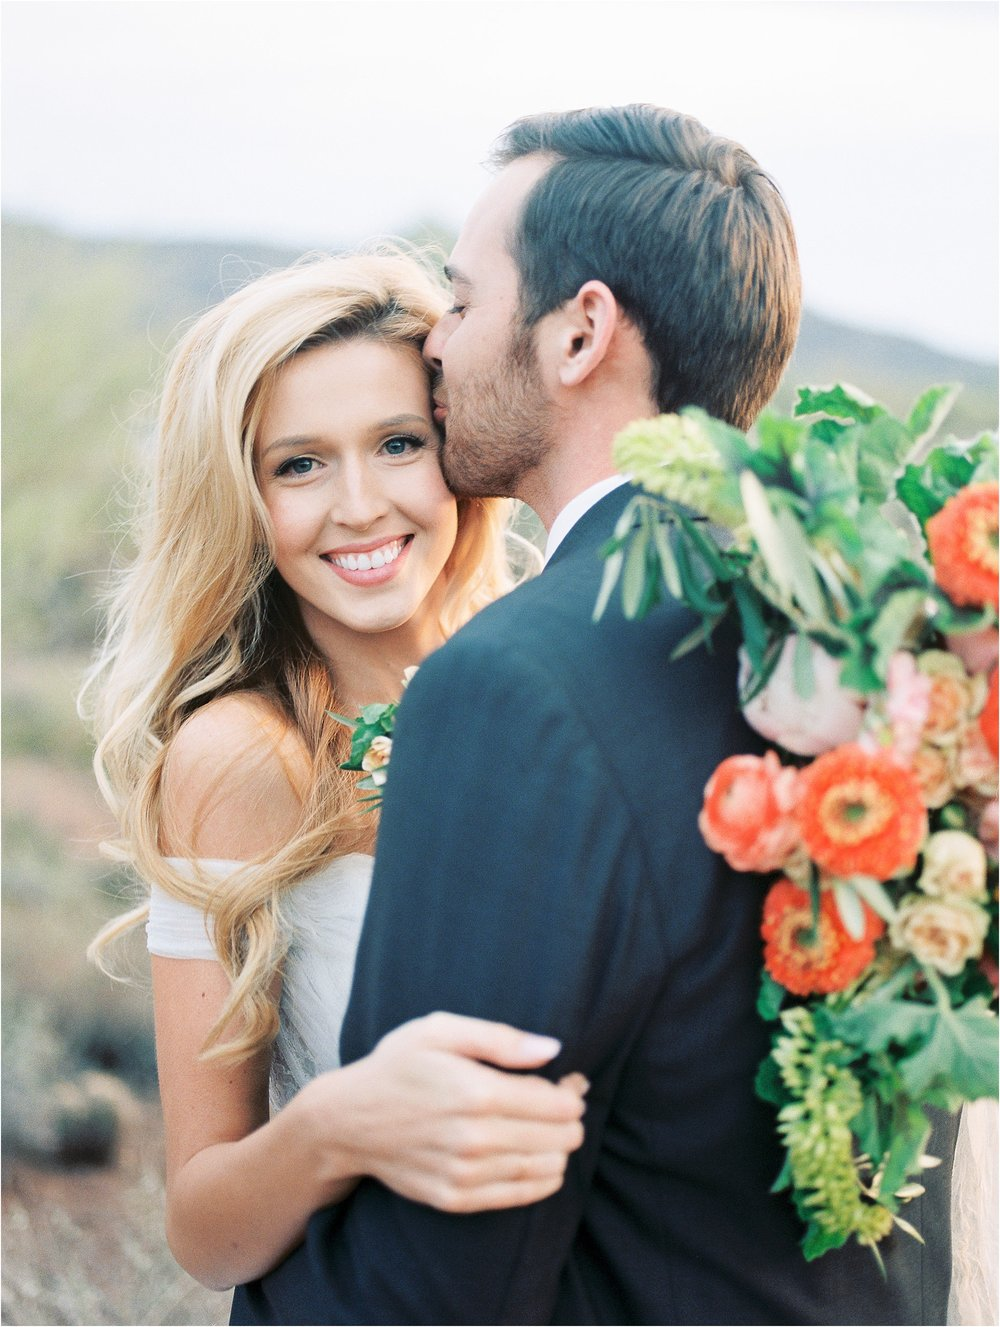 Sarah Jane Photography Film Hybrid Scottsdale Phoenix Arizona Destination Wedding Photographer Ally Ryan Desert_0026.jpg